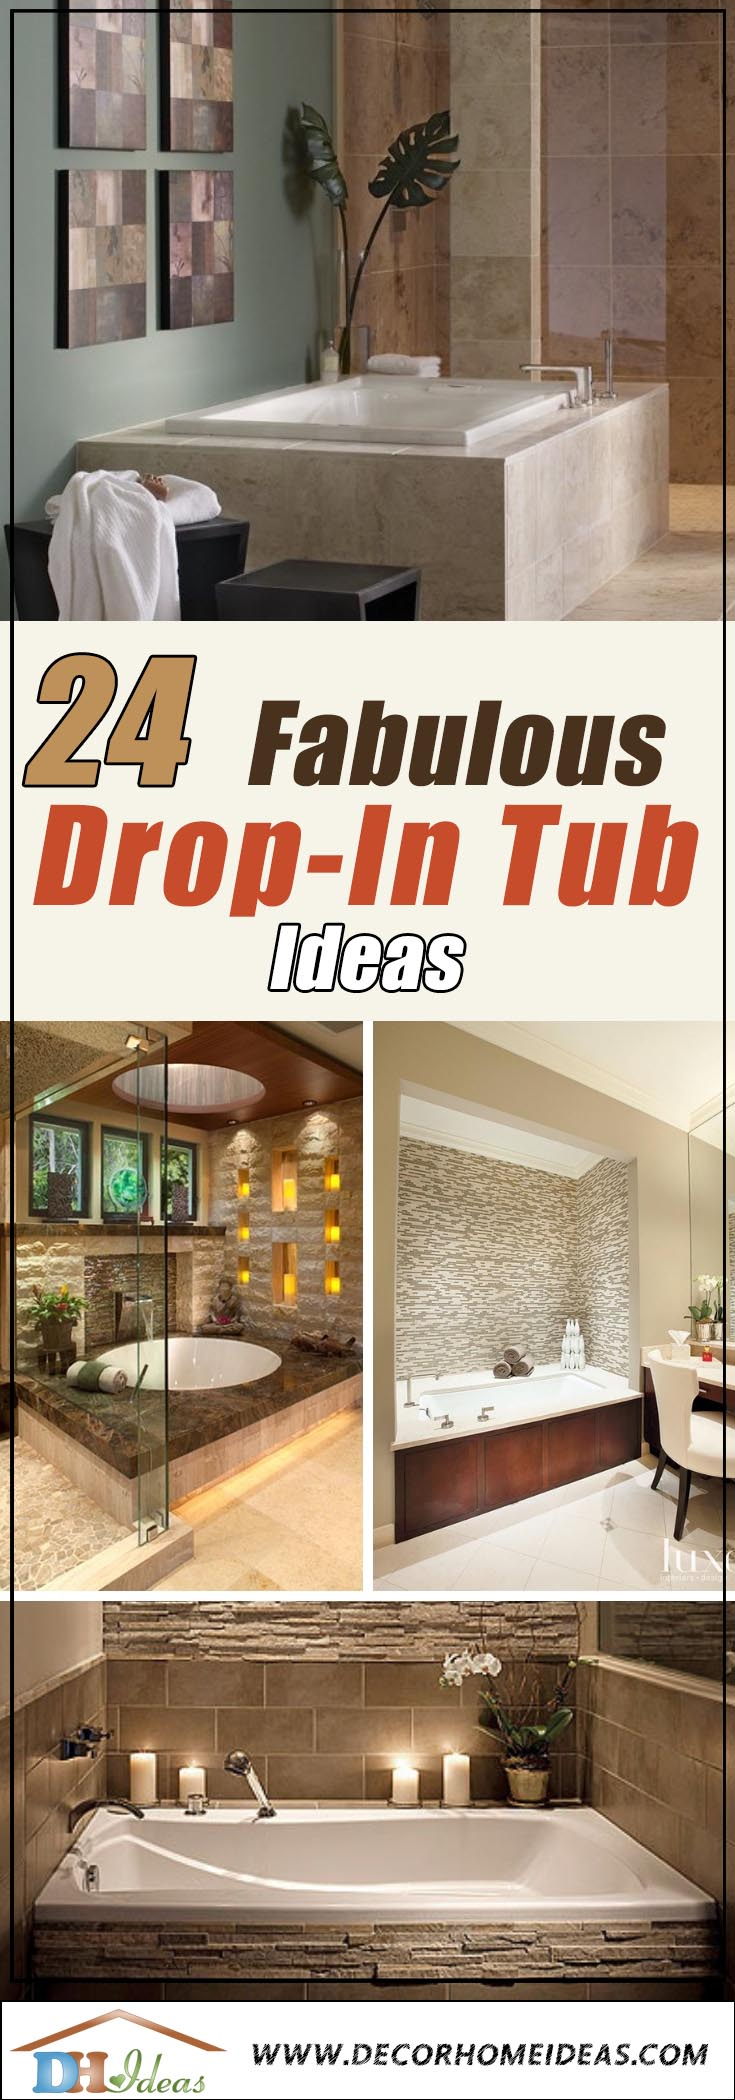 24 Fabulous Drop In Tub Ideas And Designs For 2021 Decor Home Ideas